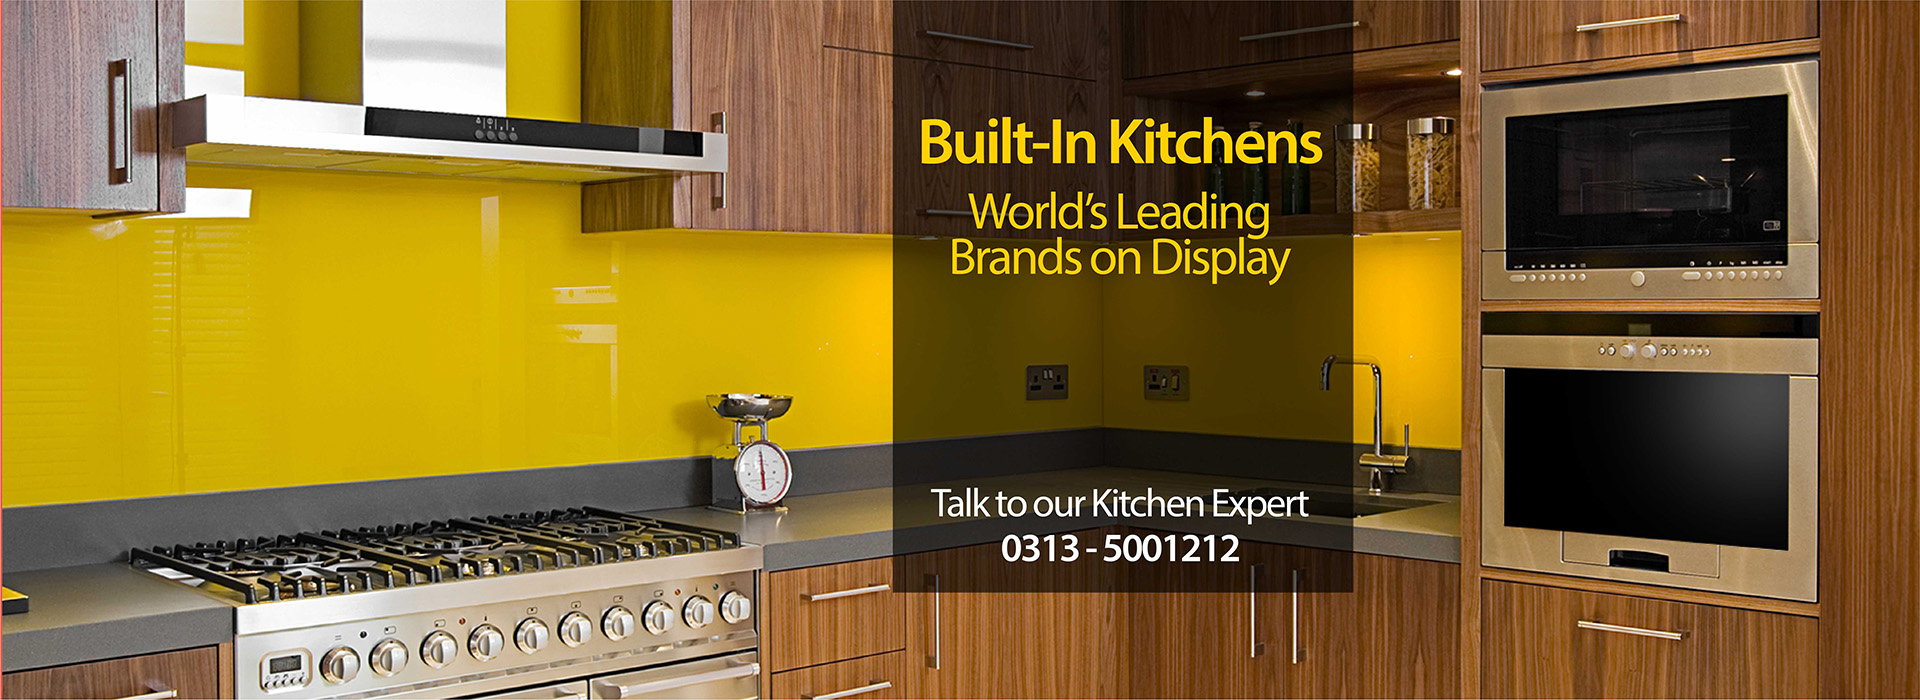 BUILTIN APPLIANCES